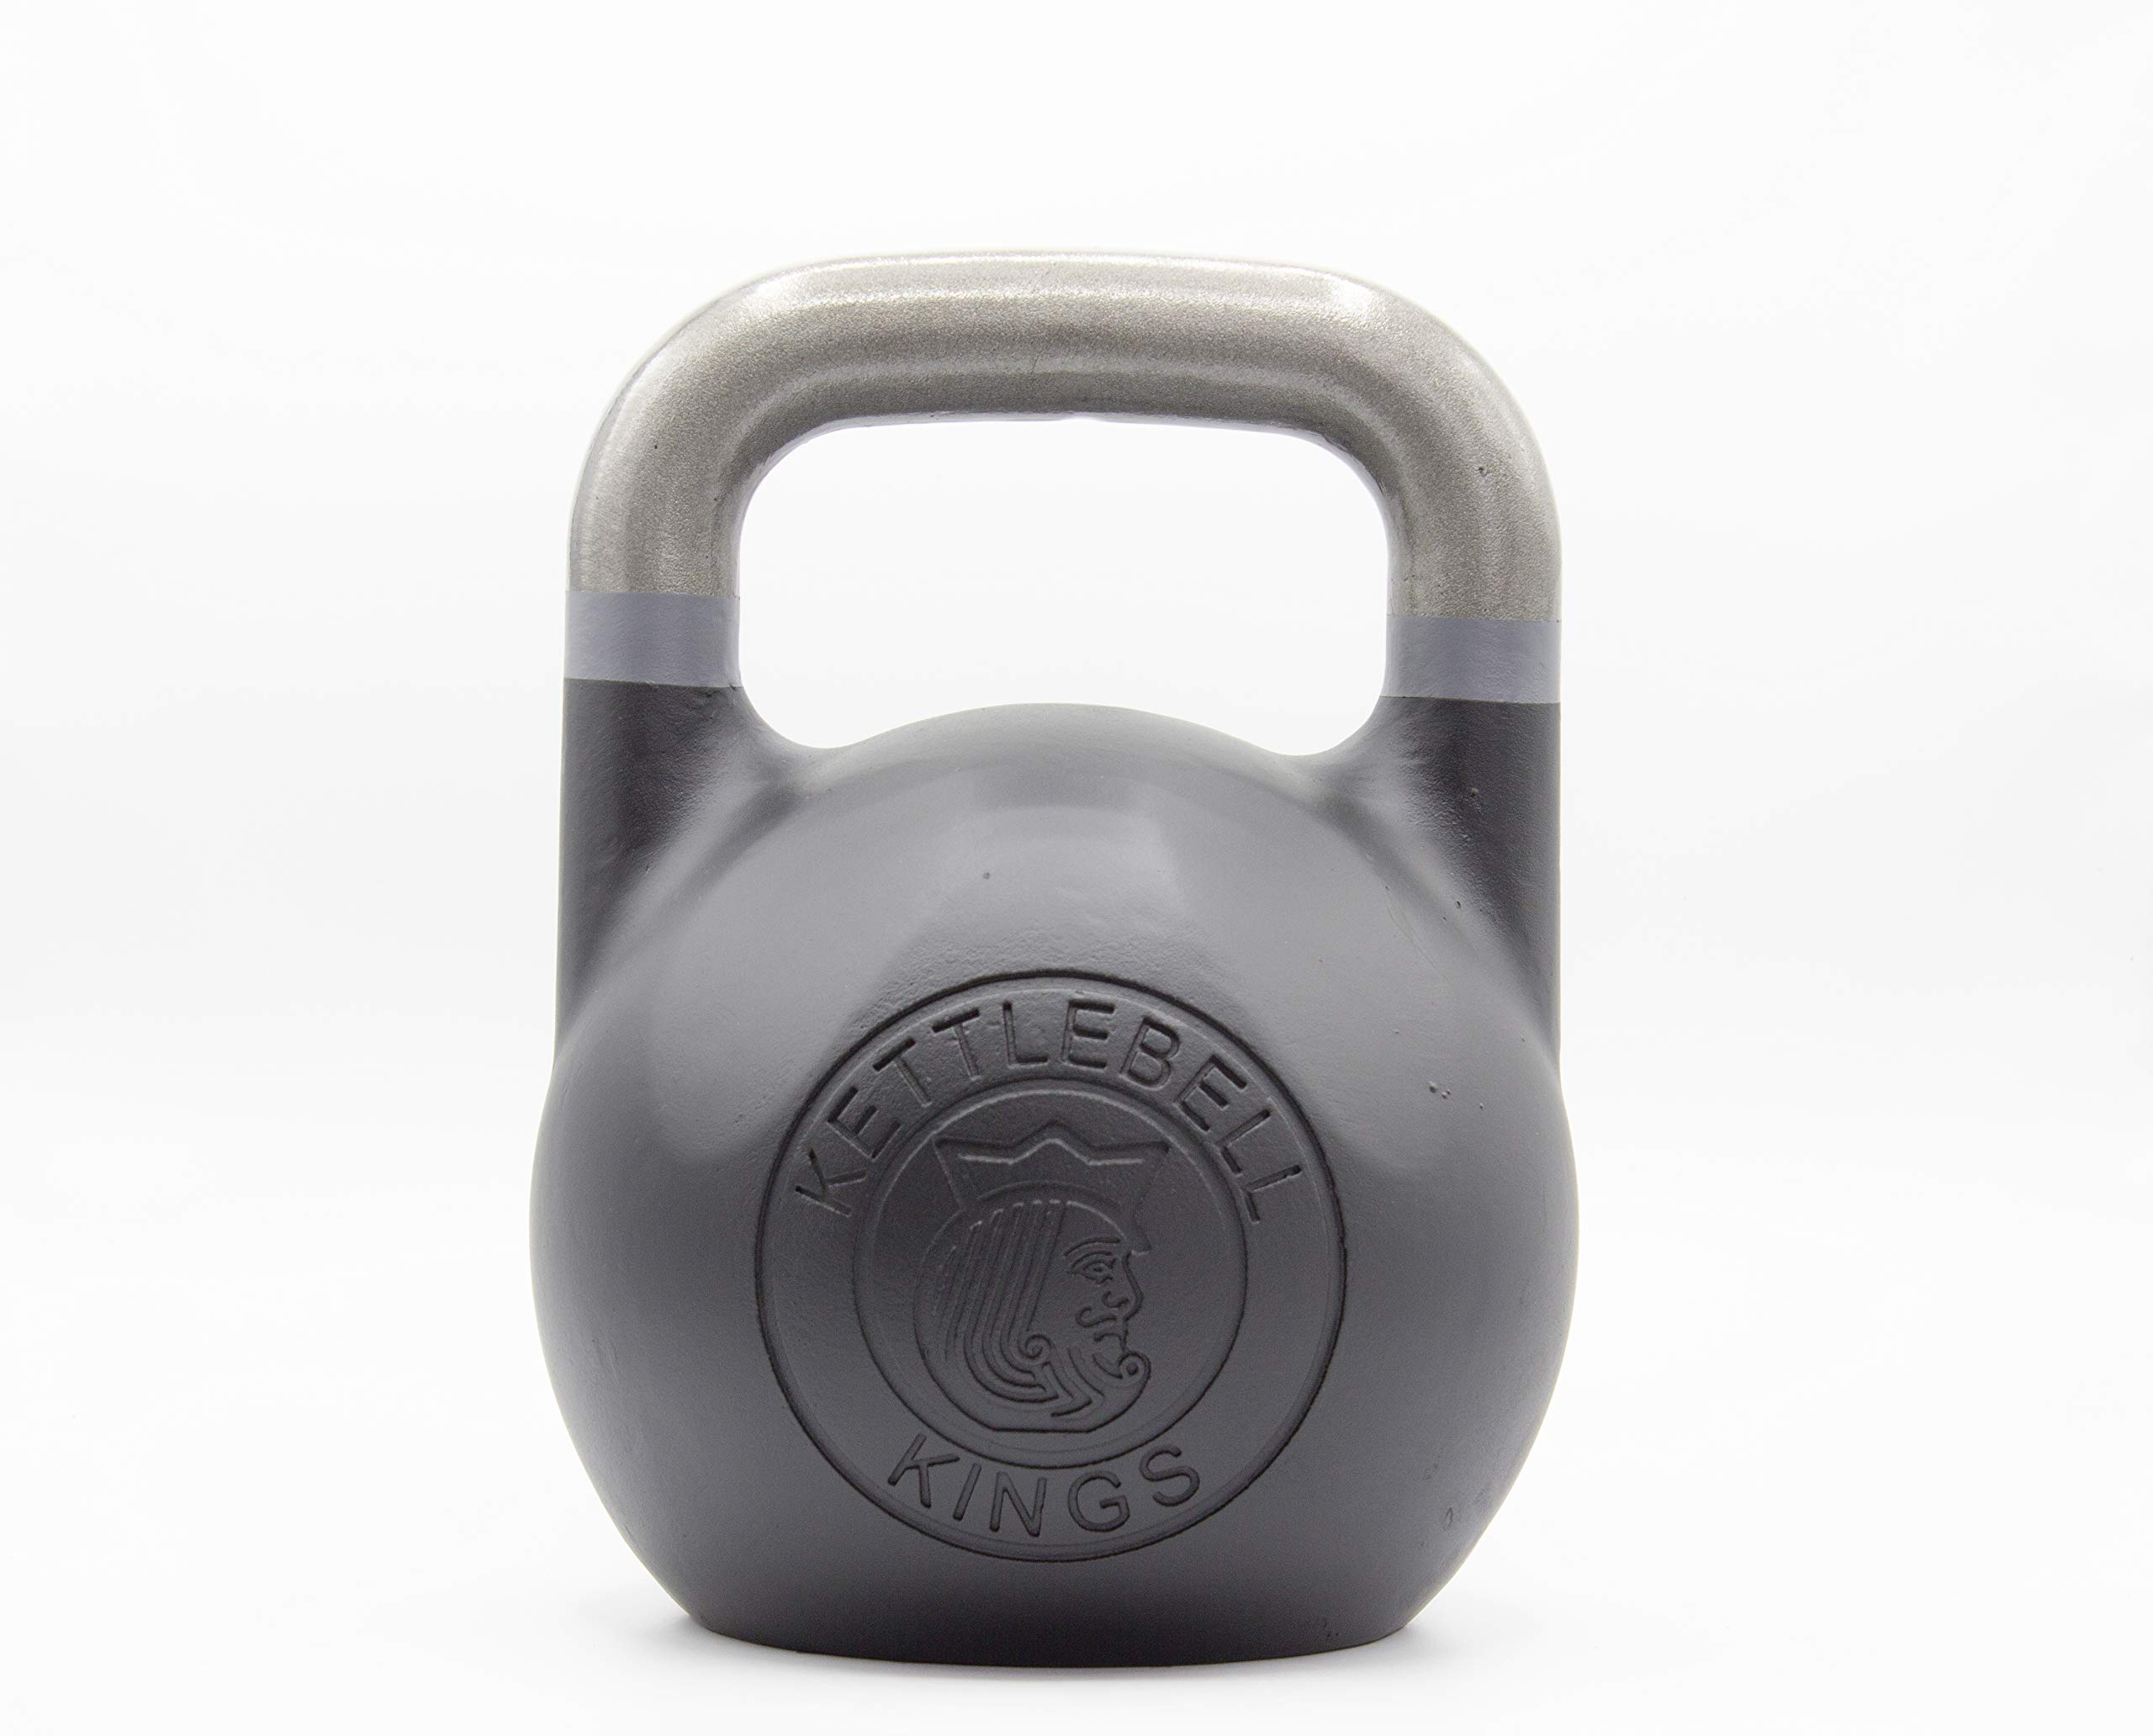 Kettlebell Kings | Kettlebell Weights | Competition Kettlebell Weight Sets for Women & Men | Built in American Style | Same Size & Dimension Across All Weights (75)